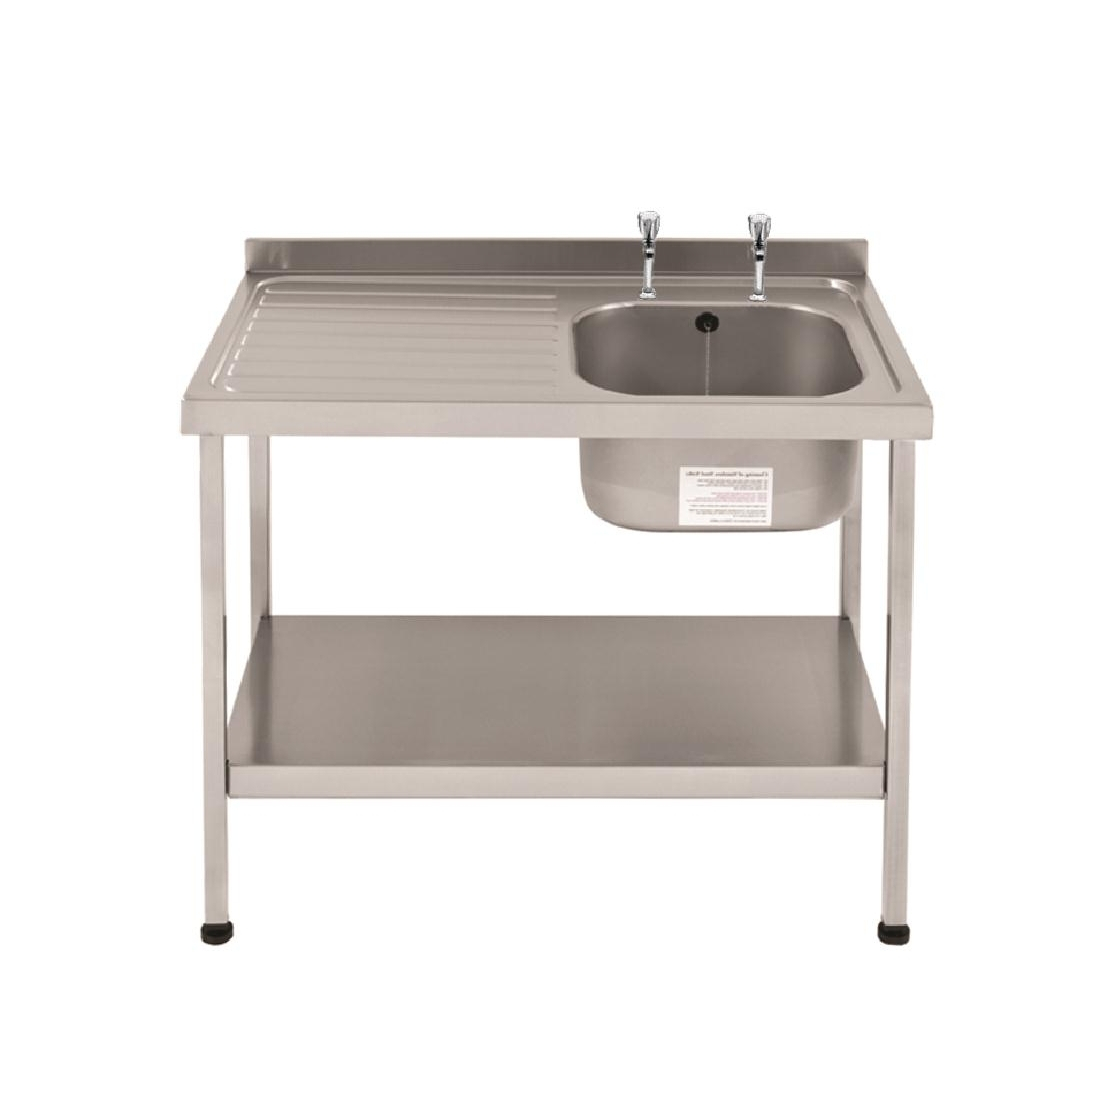 Franke Sissons Self Assembly Stainless Steel Sink Right Hand Bowl 1000x600mm